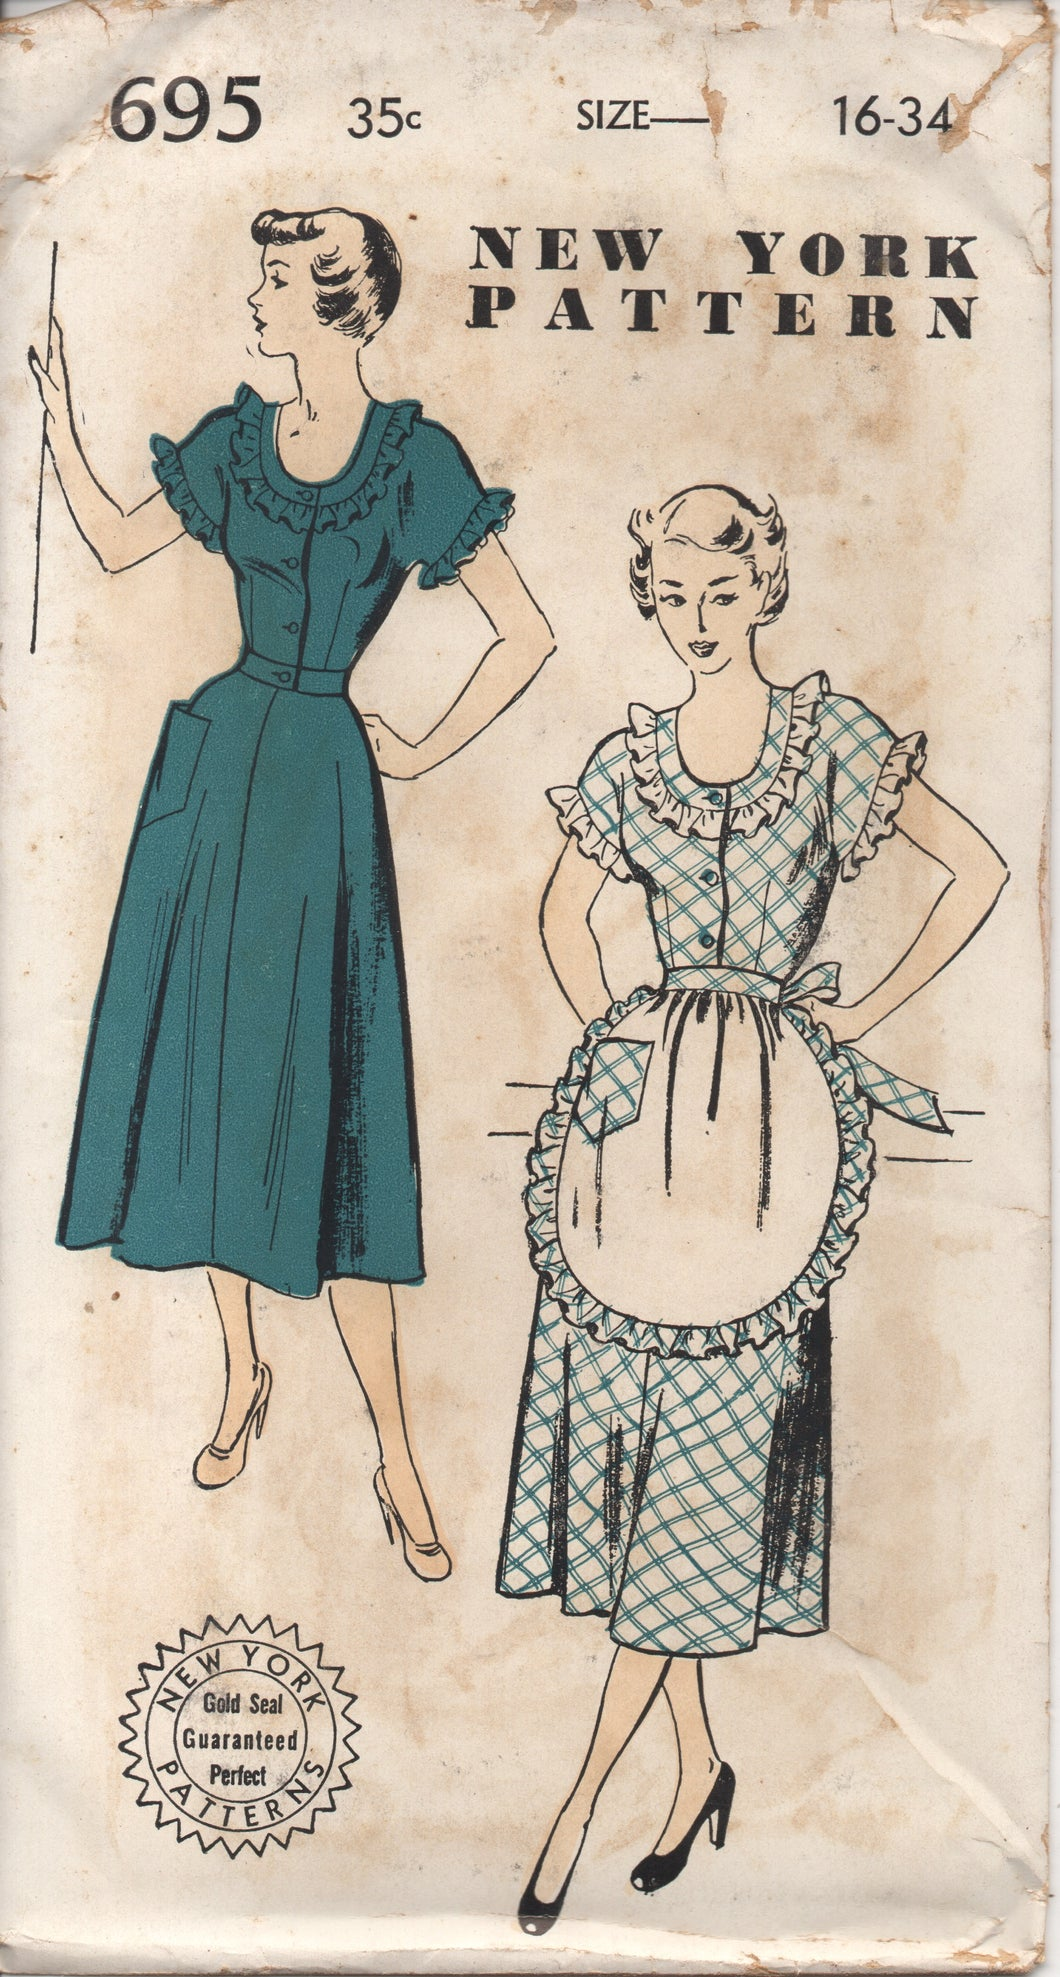 1950's New York One Piece Dress with Scoop Neckline and Half Apron - Bust 34